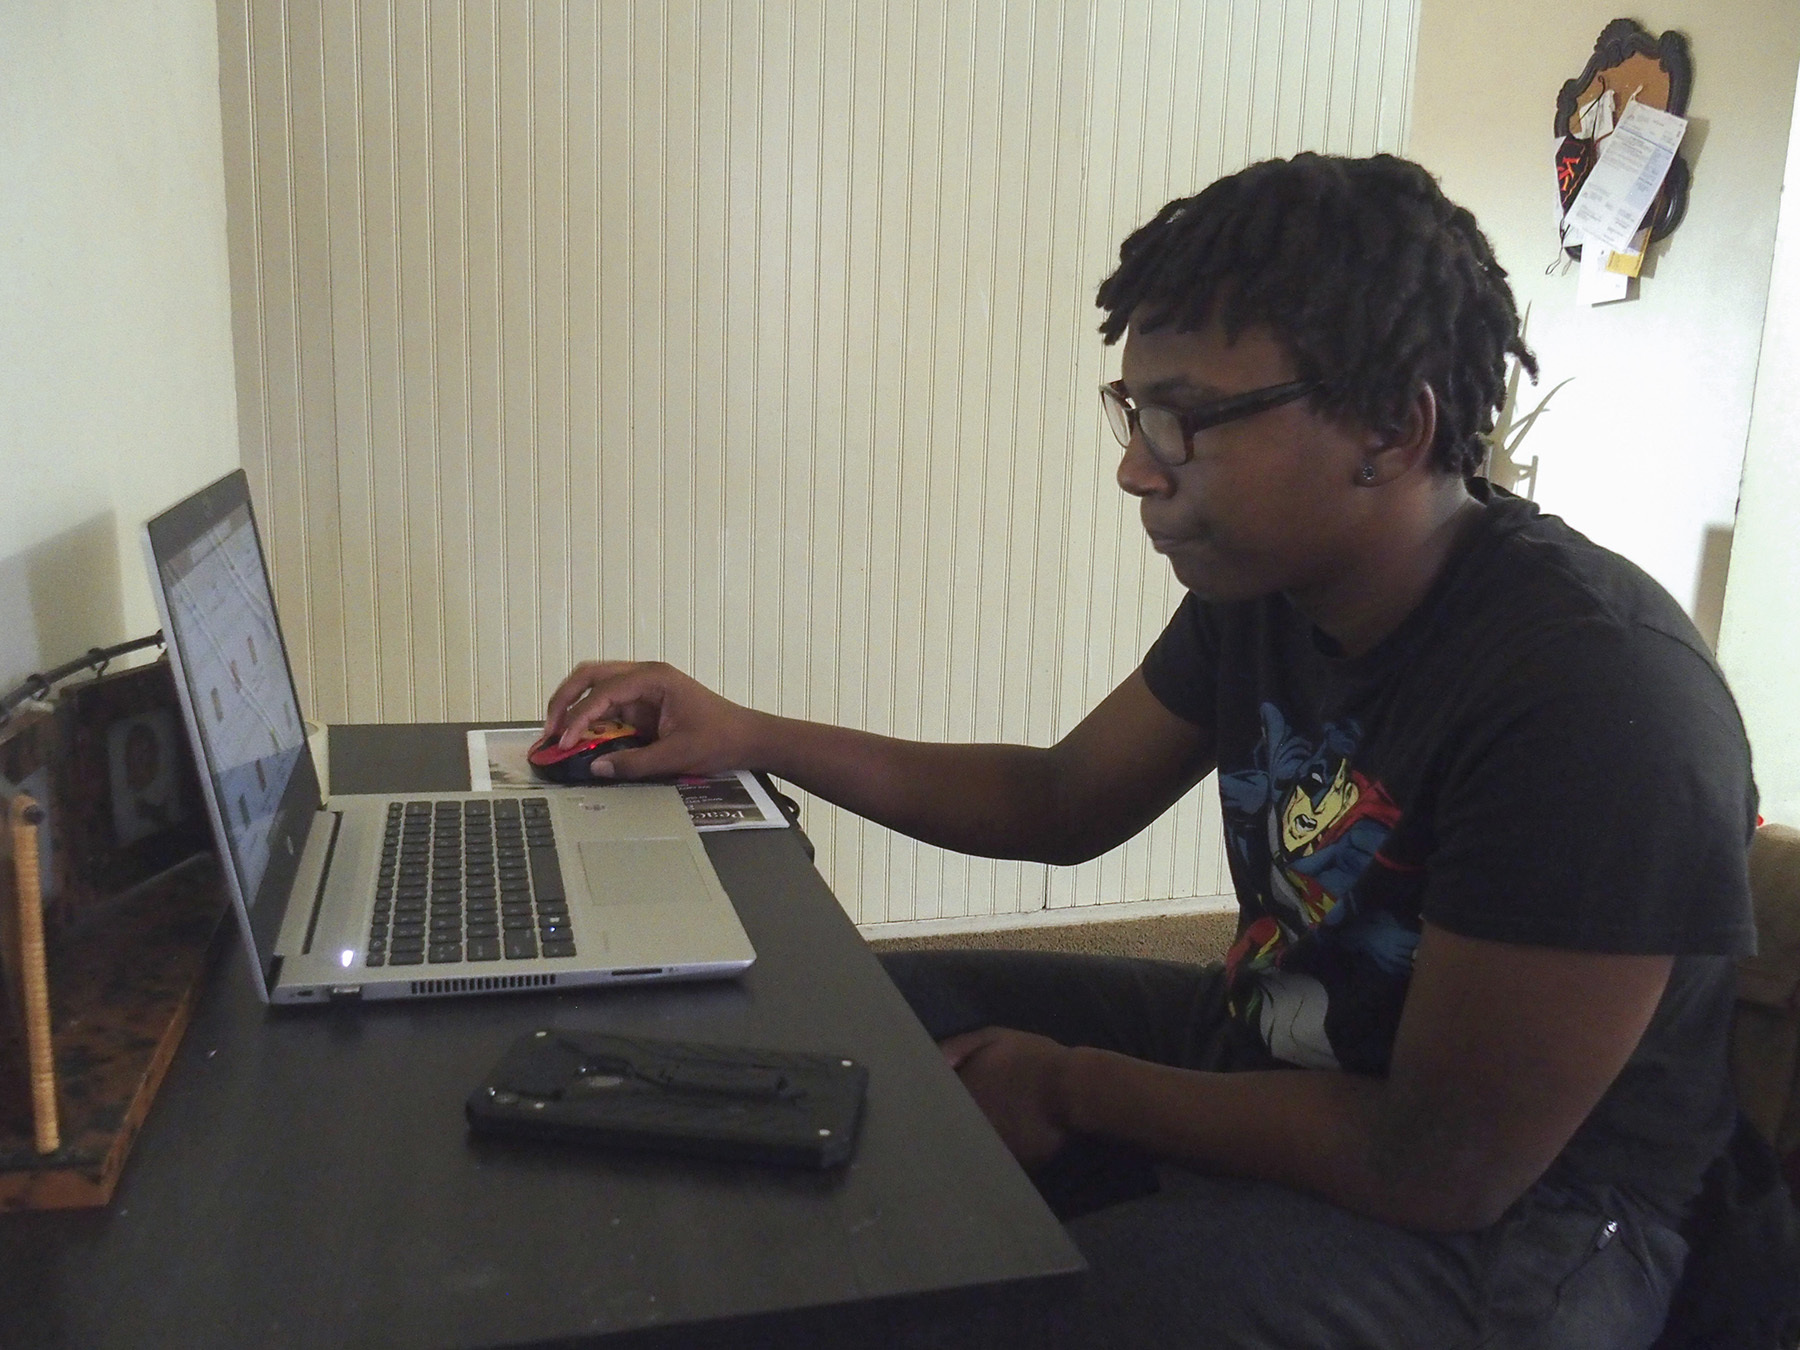 Jalan Clemmons working on his laptop computer at home.